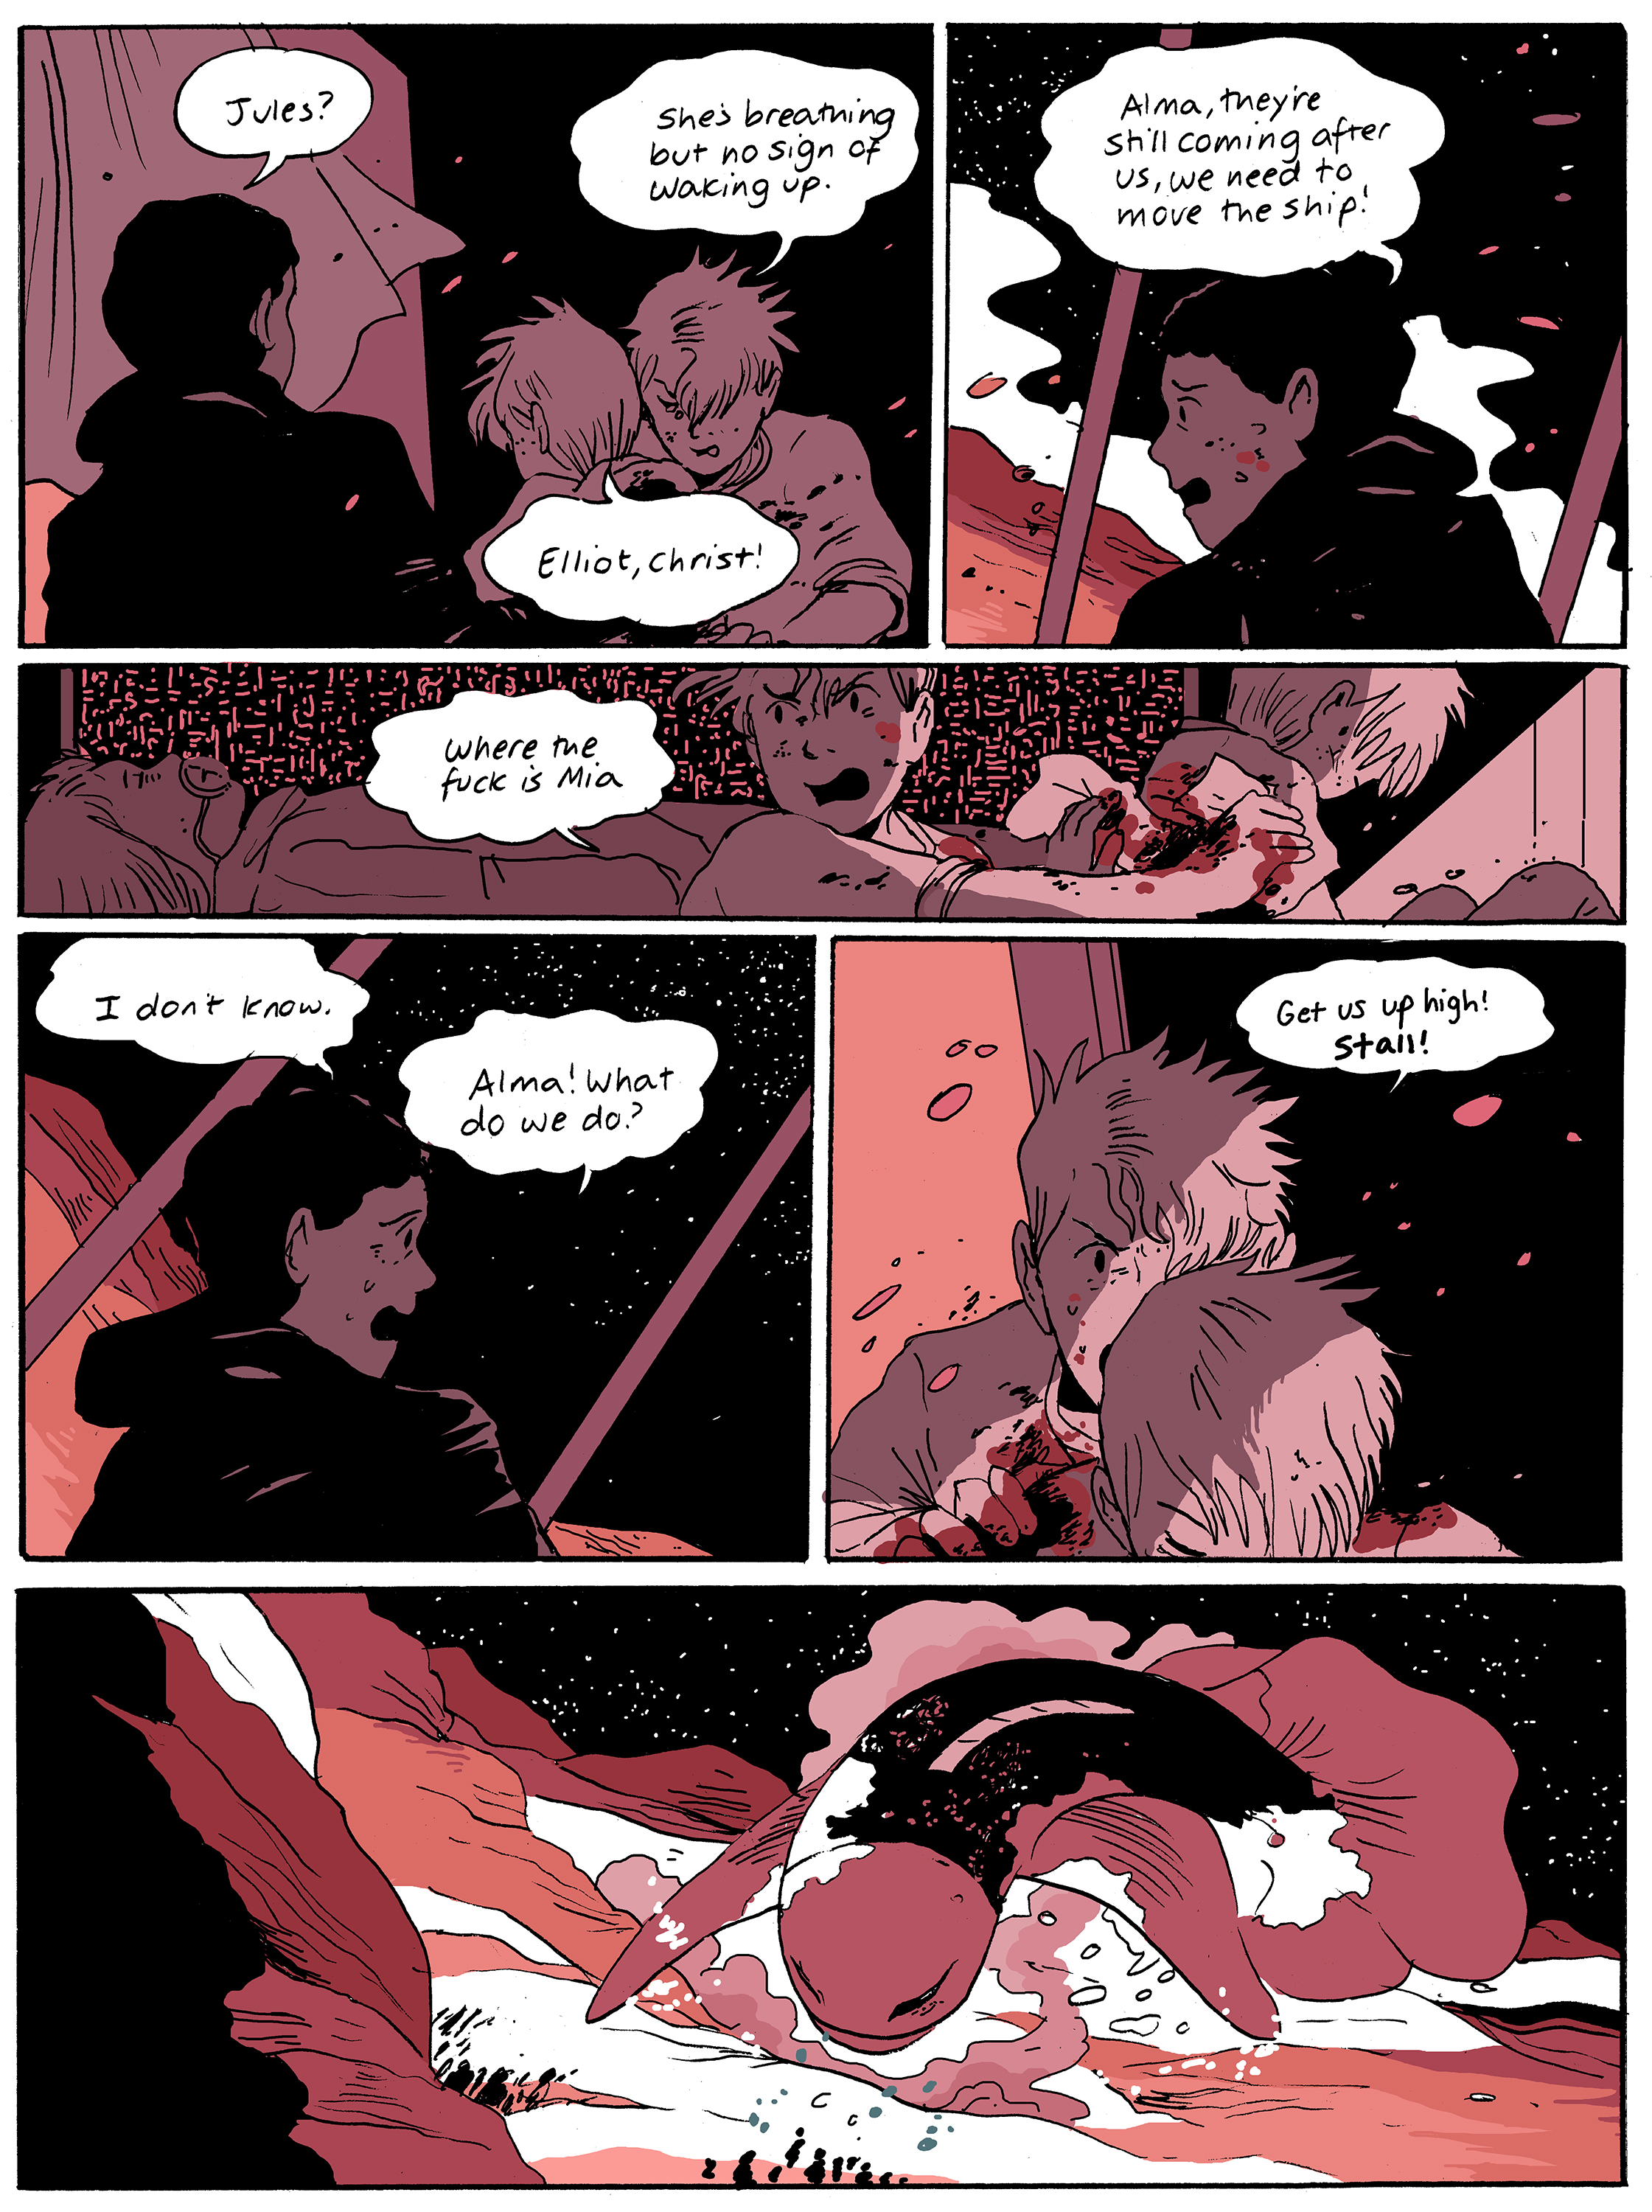 chapter19_page20.jpg